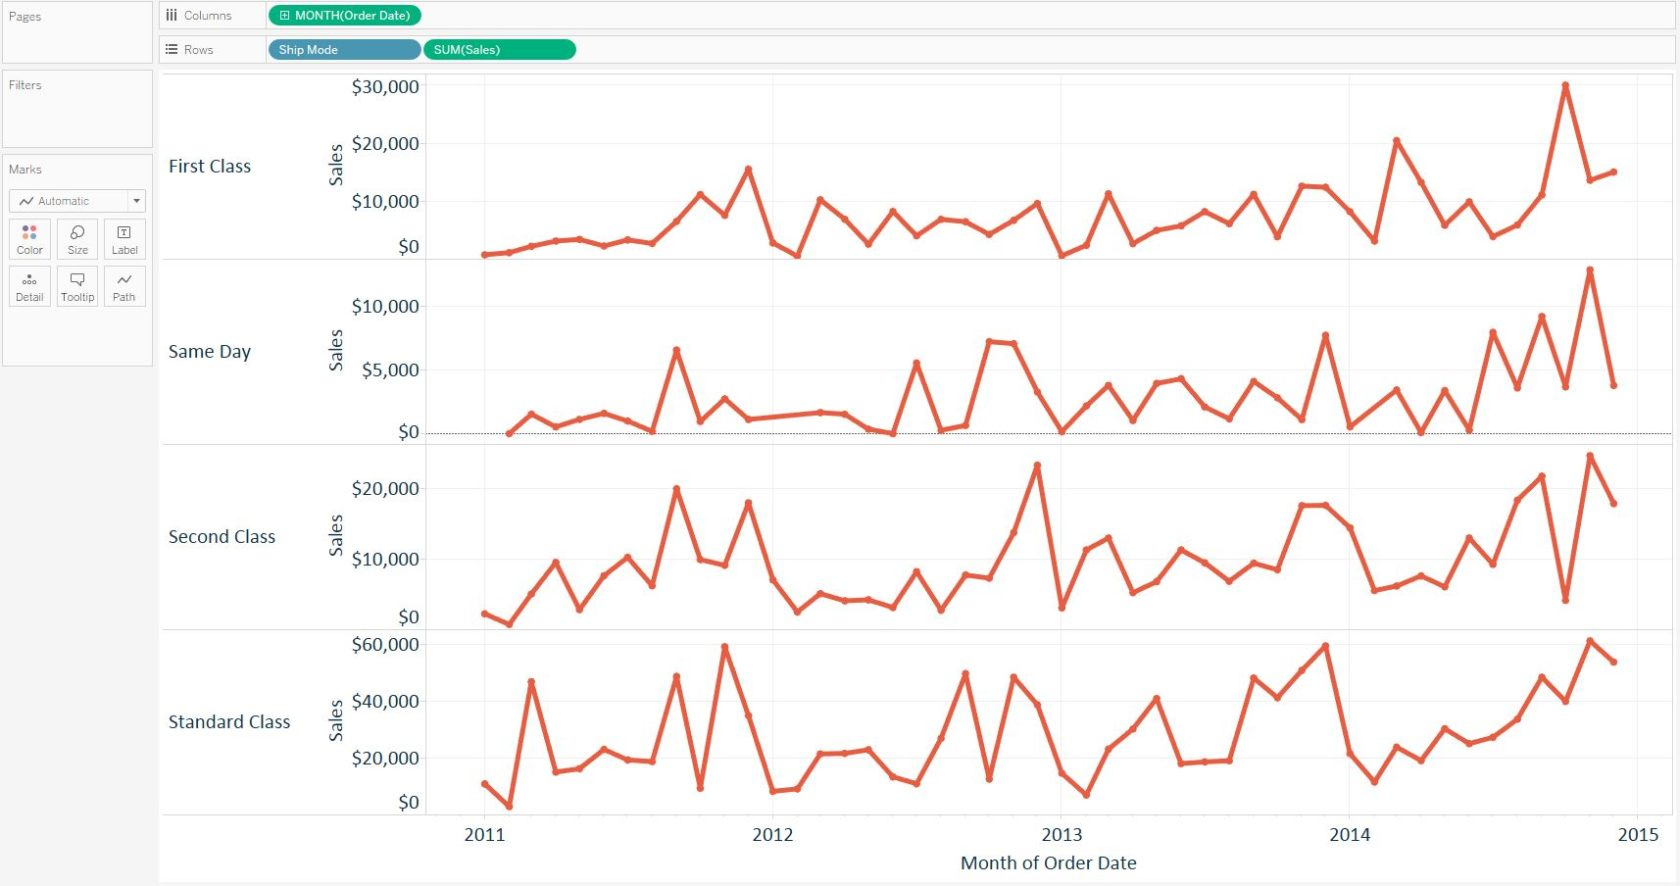 Tableau Line Graph by Ship Mode with Independent Axes